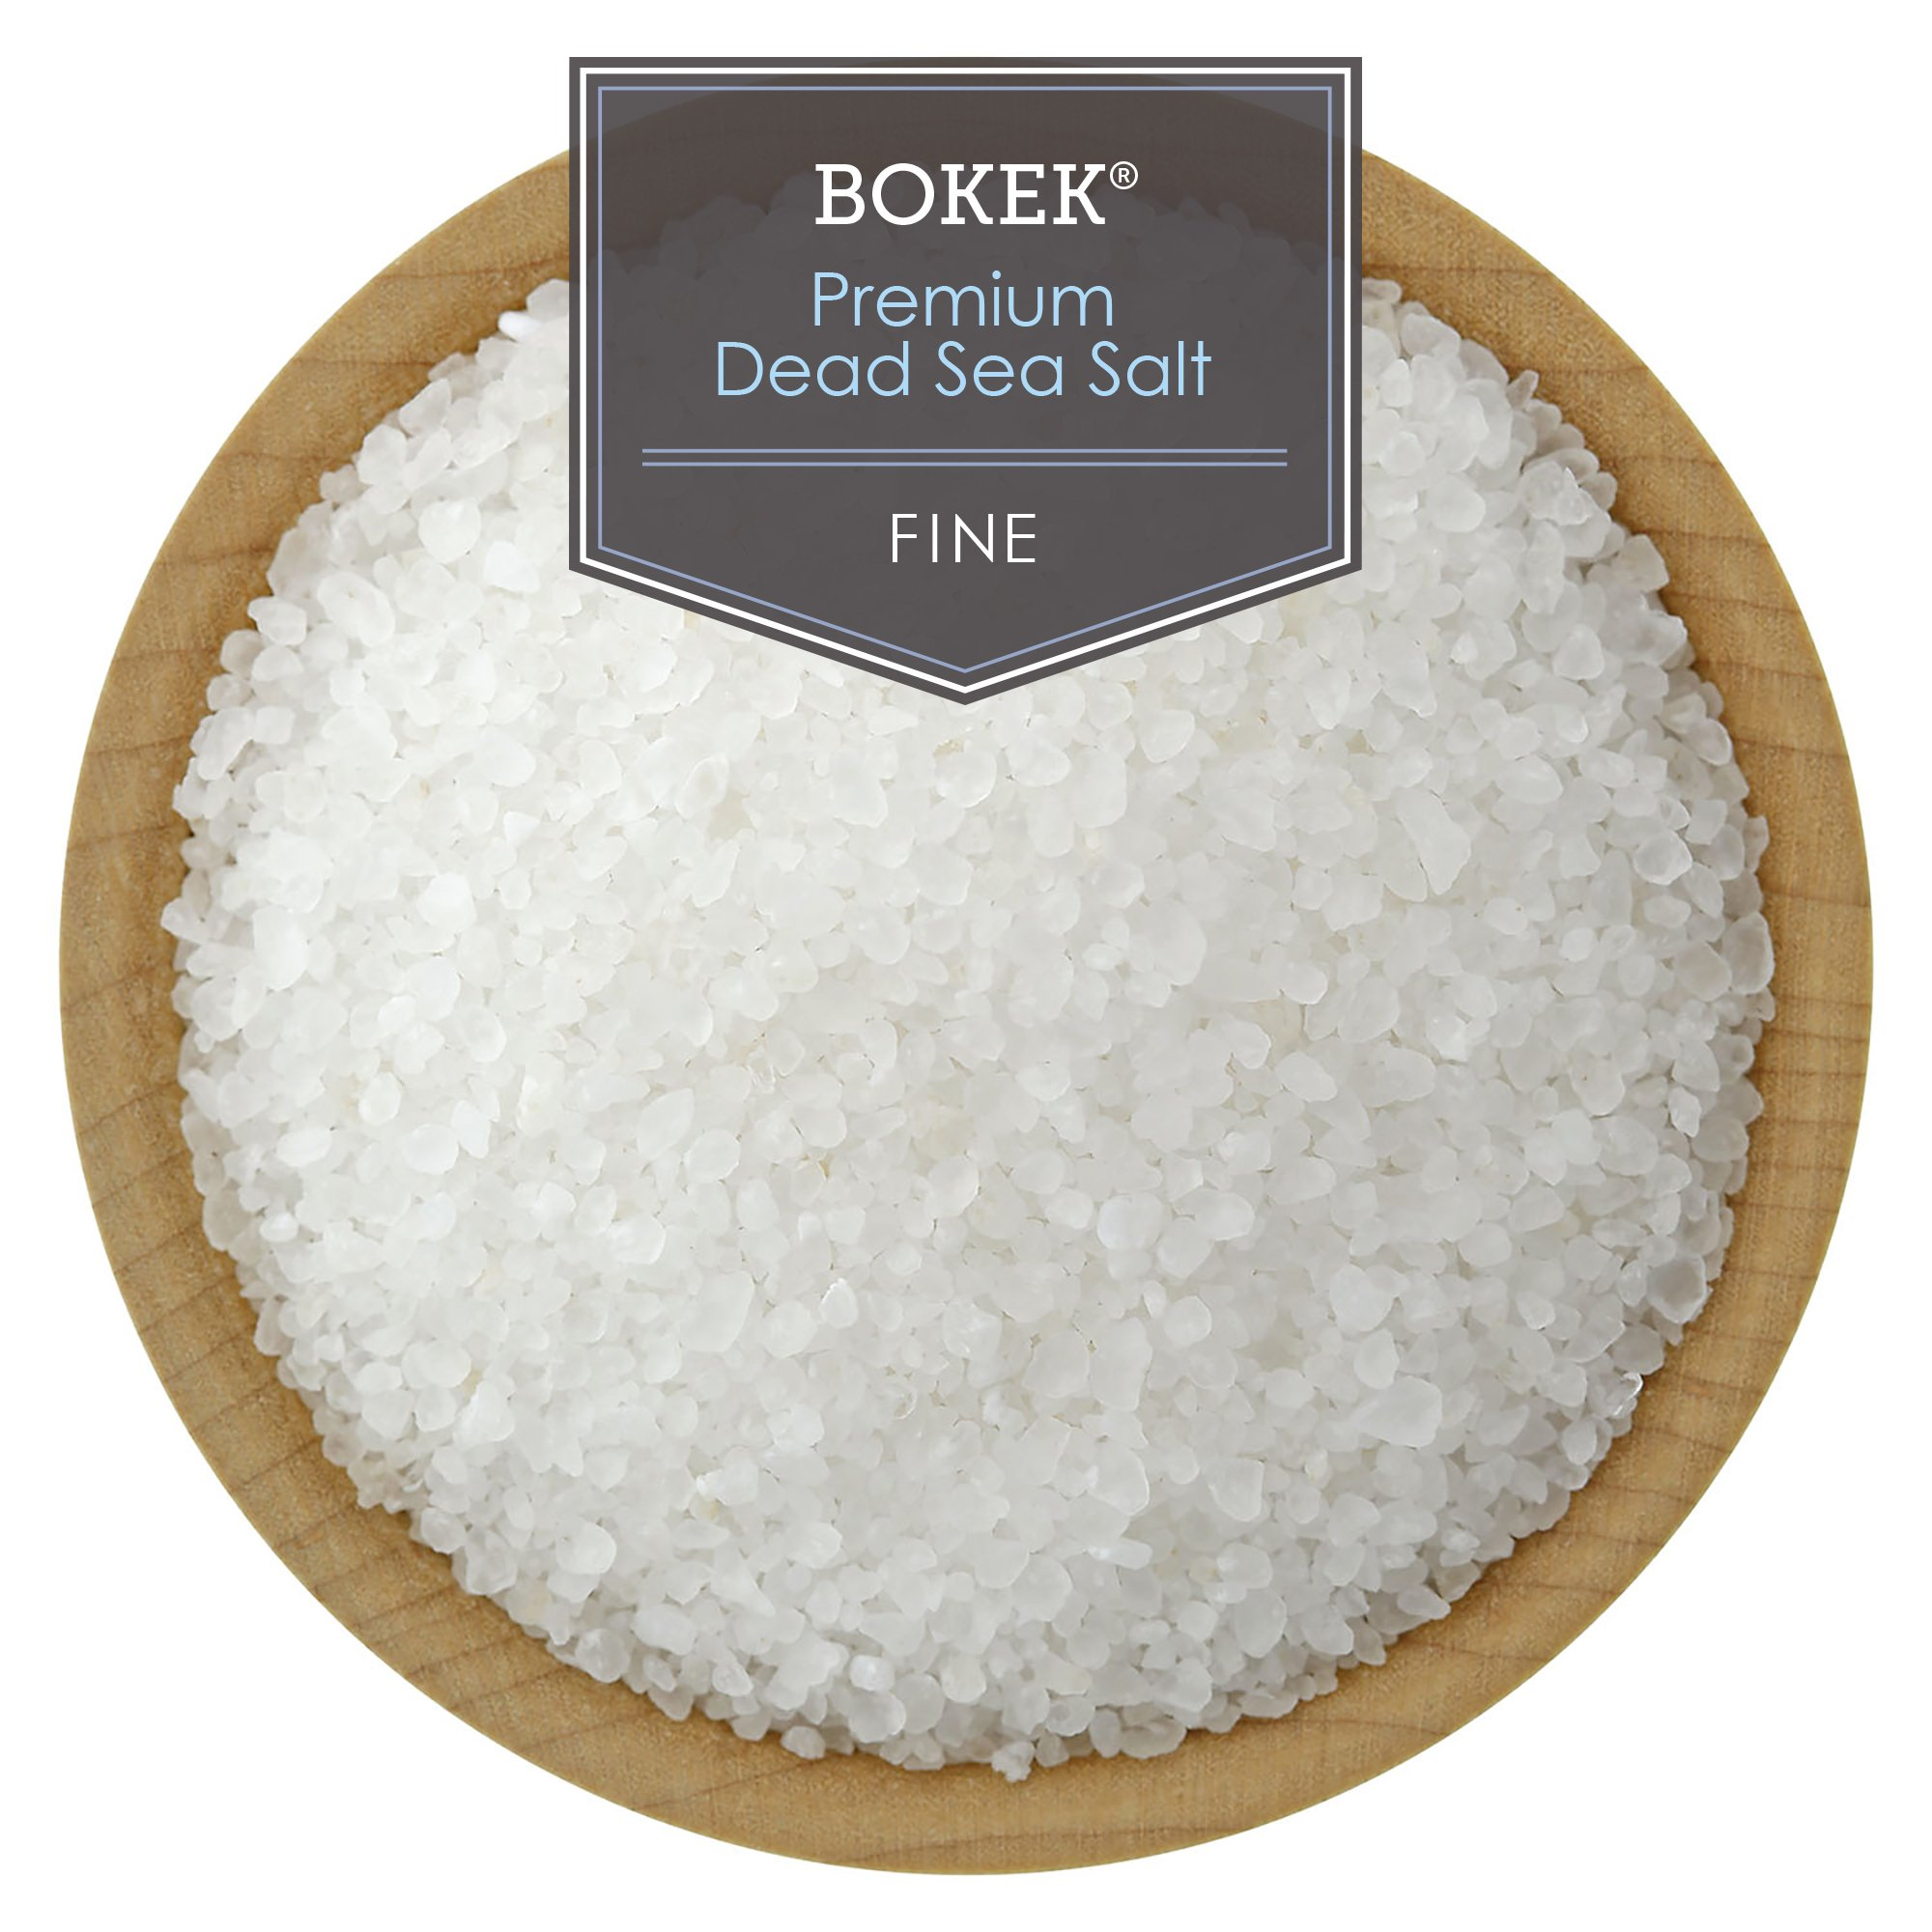 Bokek Dead Sea Salt, Fine - 55 lb Bag by SaltWorks (Image #4)